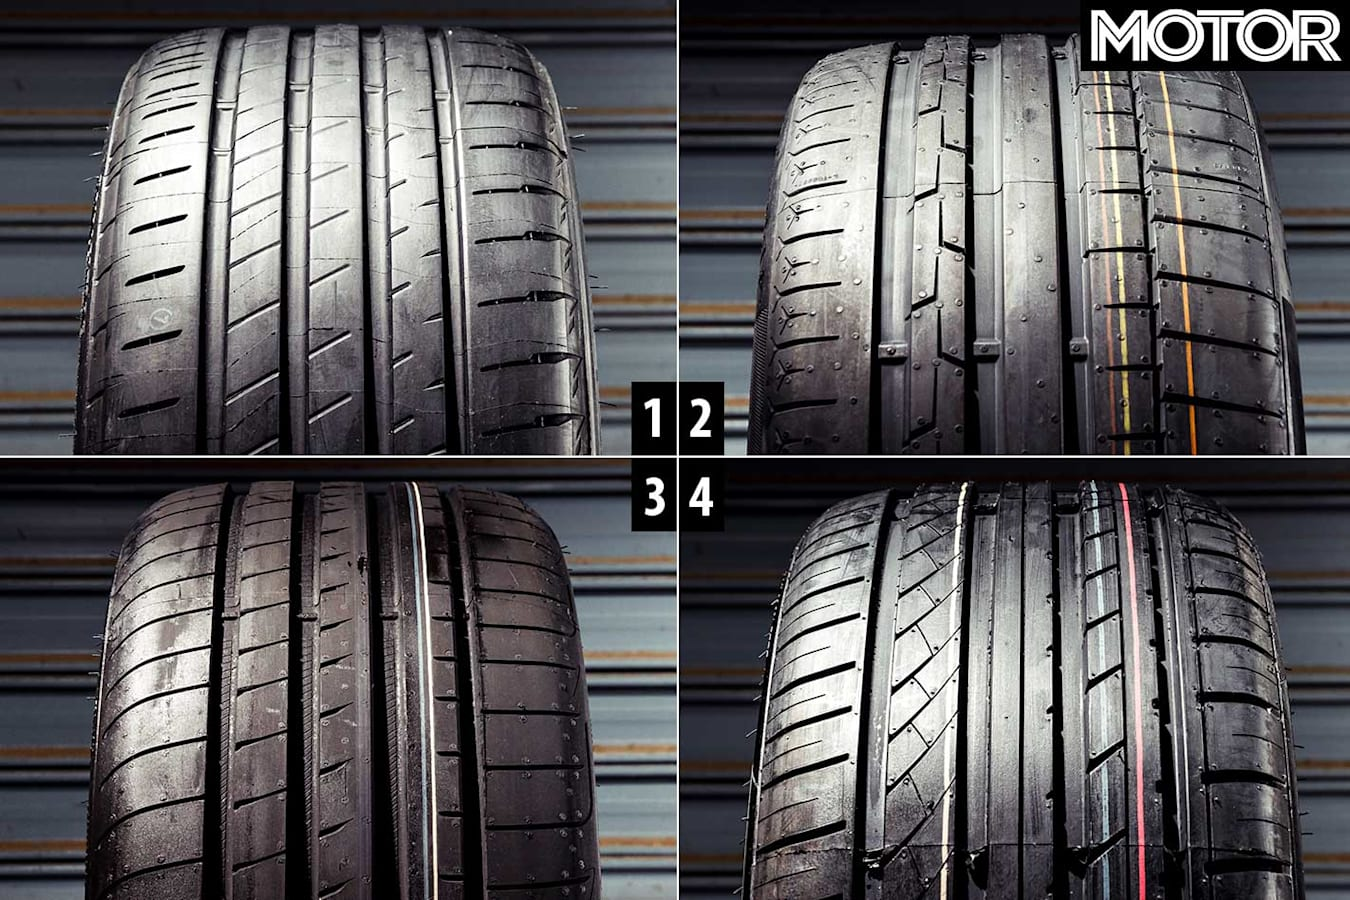 MOTOR-Tyre-Test-2019-Competitior-Group-1